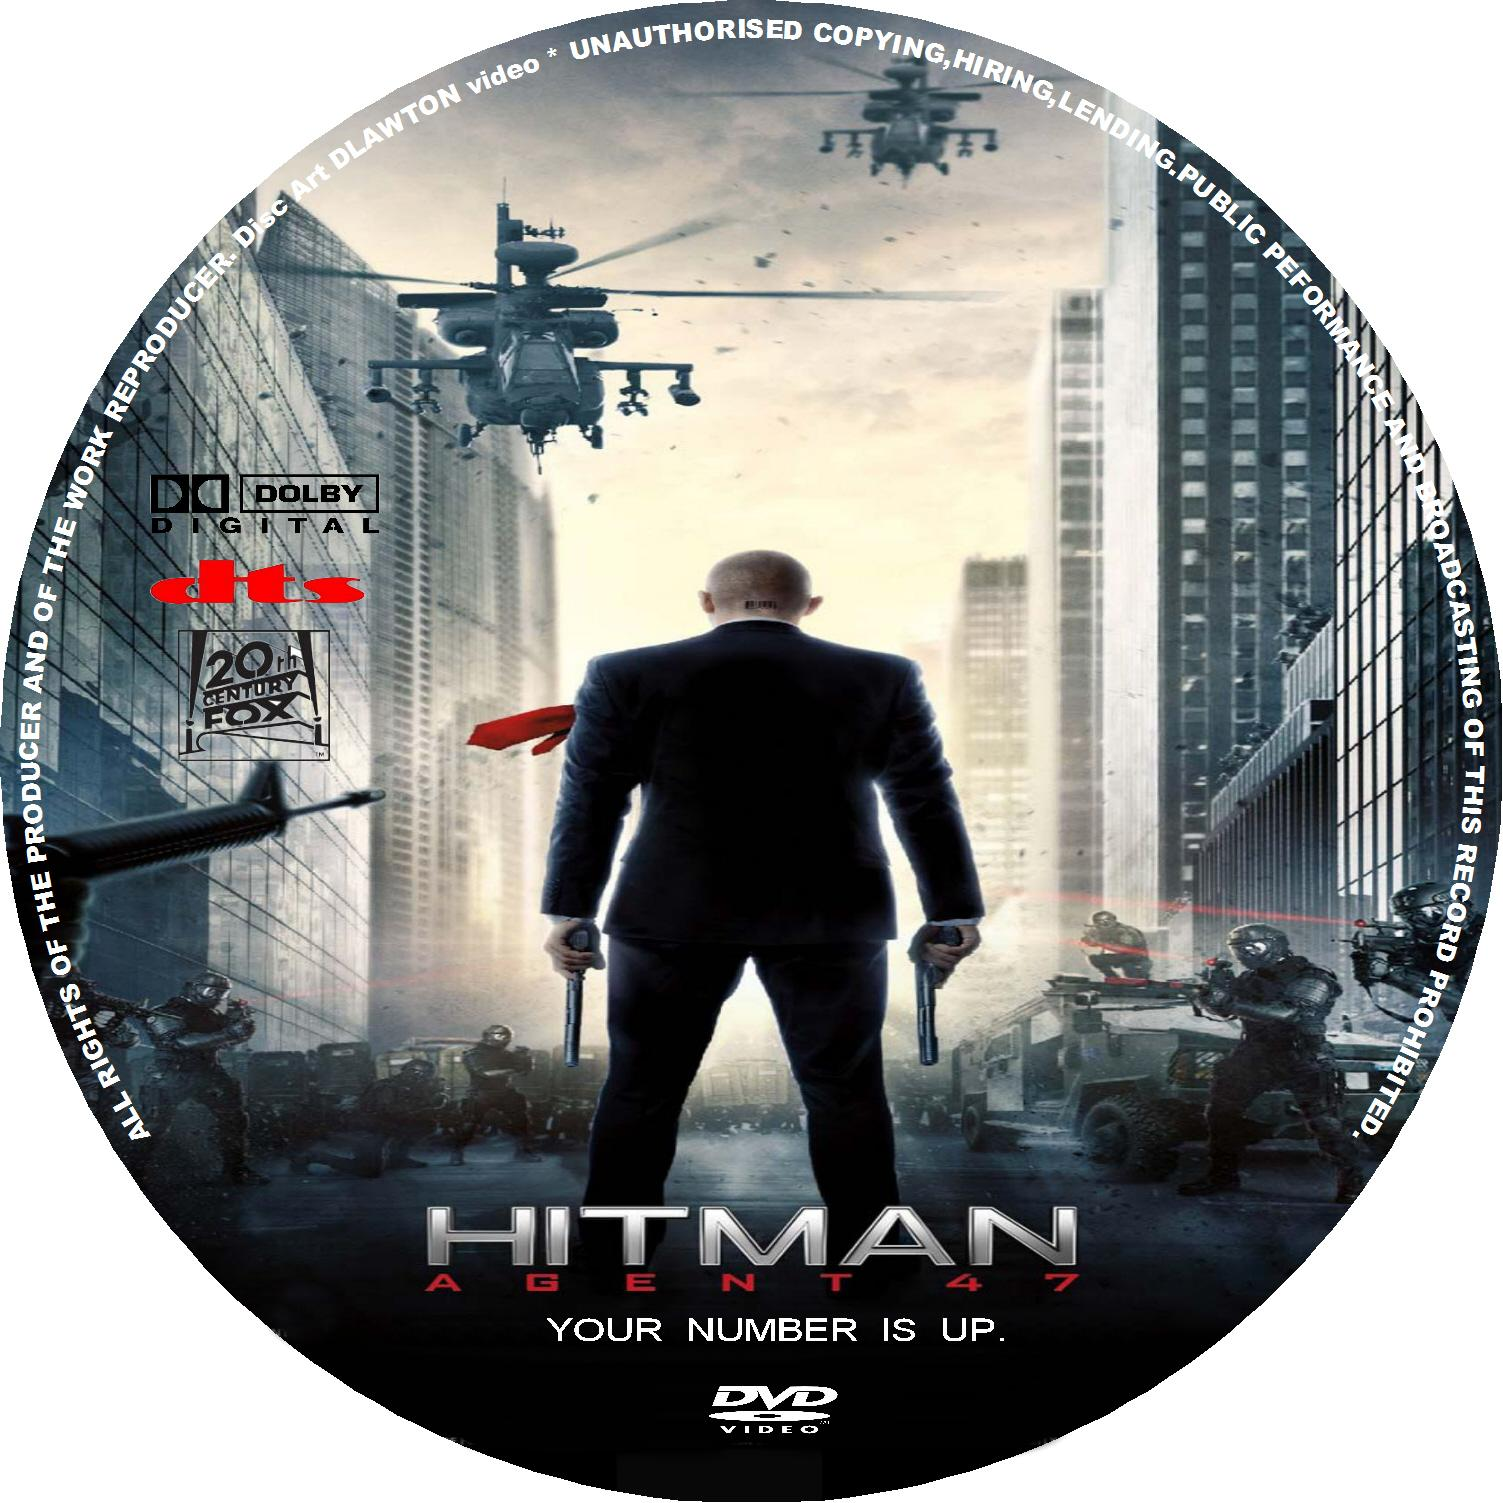 Hitman Agent 47 2015 R1 Custom Cd Dvd Covers Cover Century